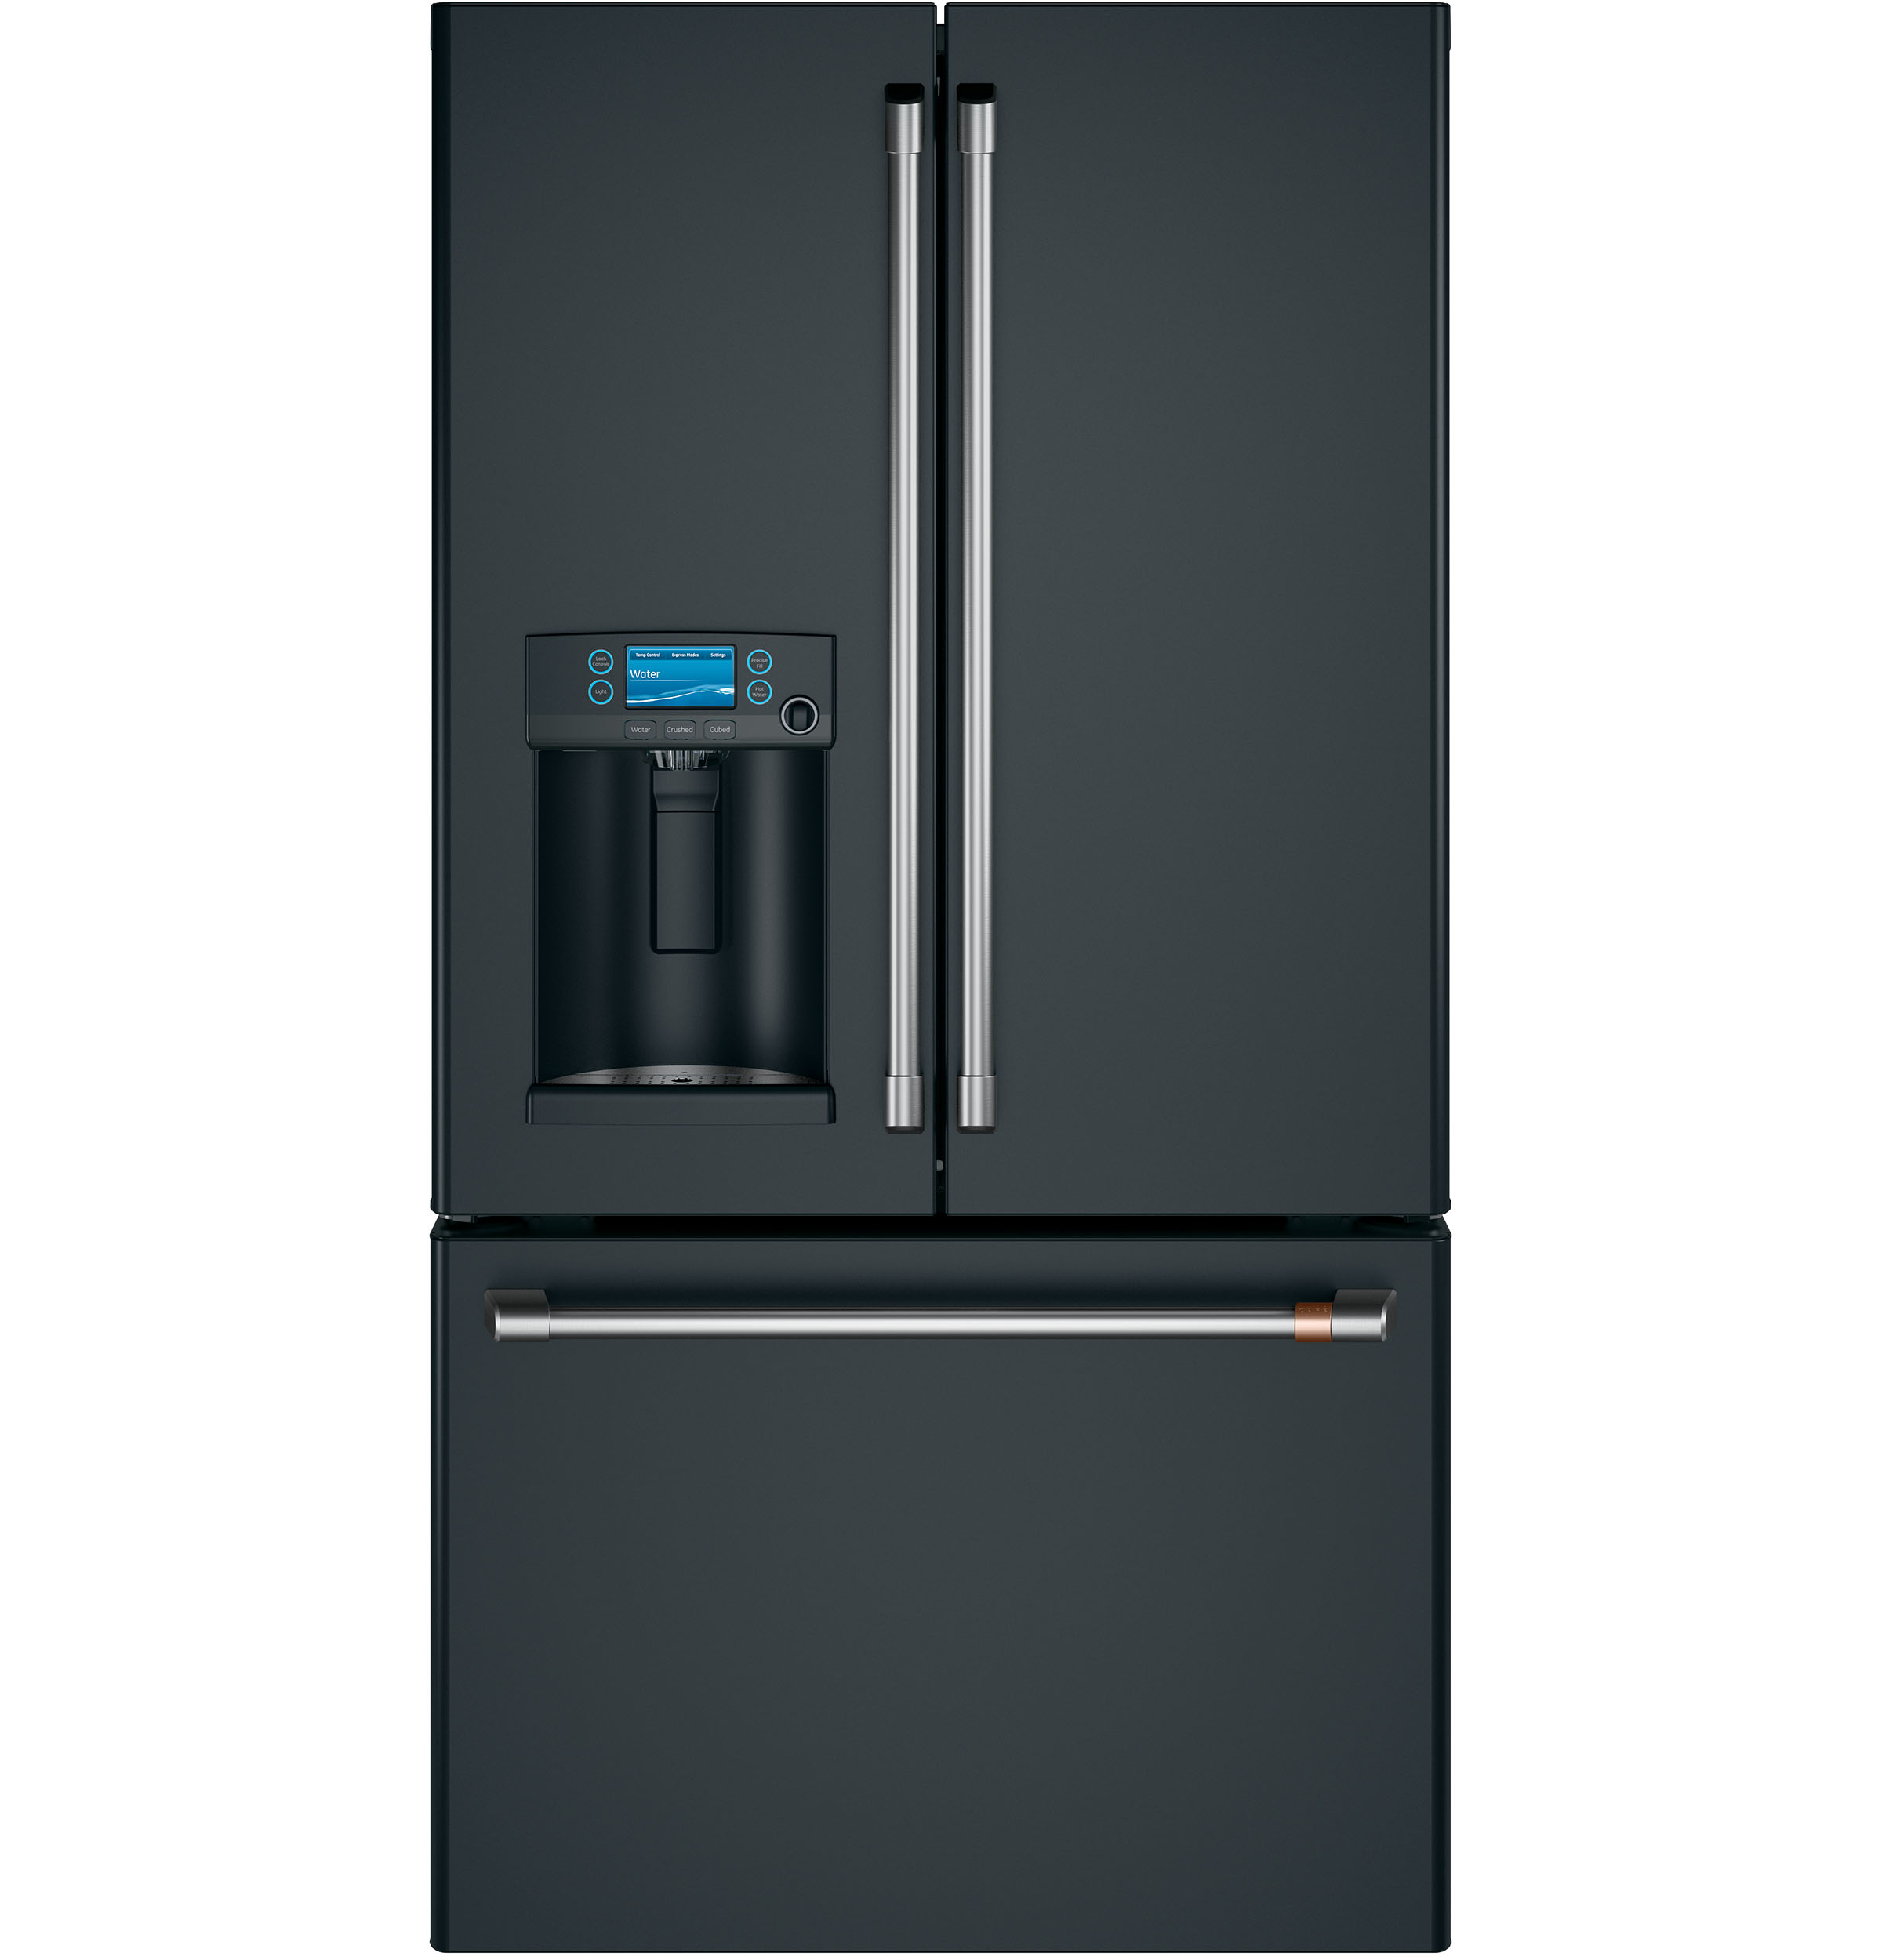 Cafe Café™ ENERGY STAR® 27.8 Cu. Ft. Smart French-Door Refrigerator with Hot Water Dispenser